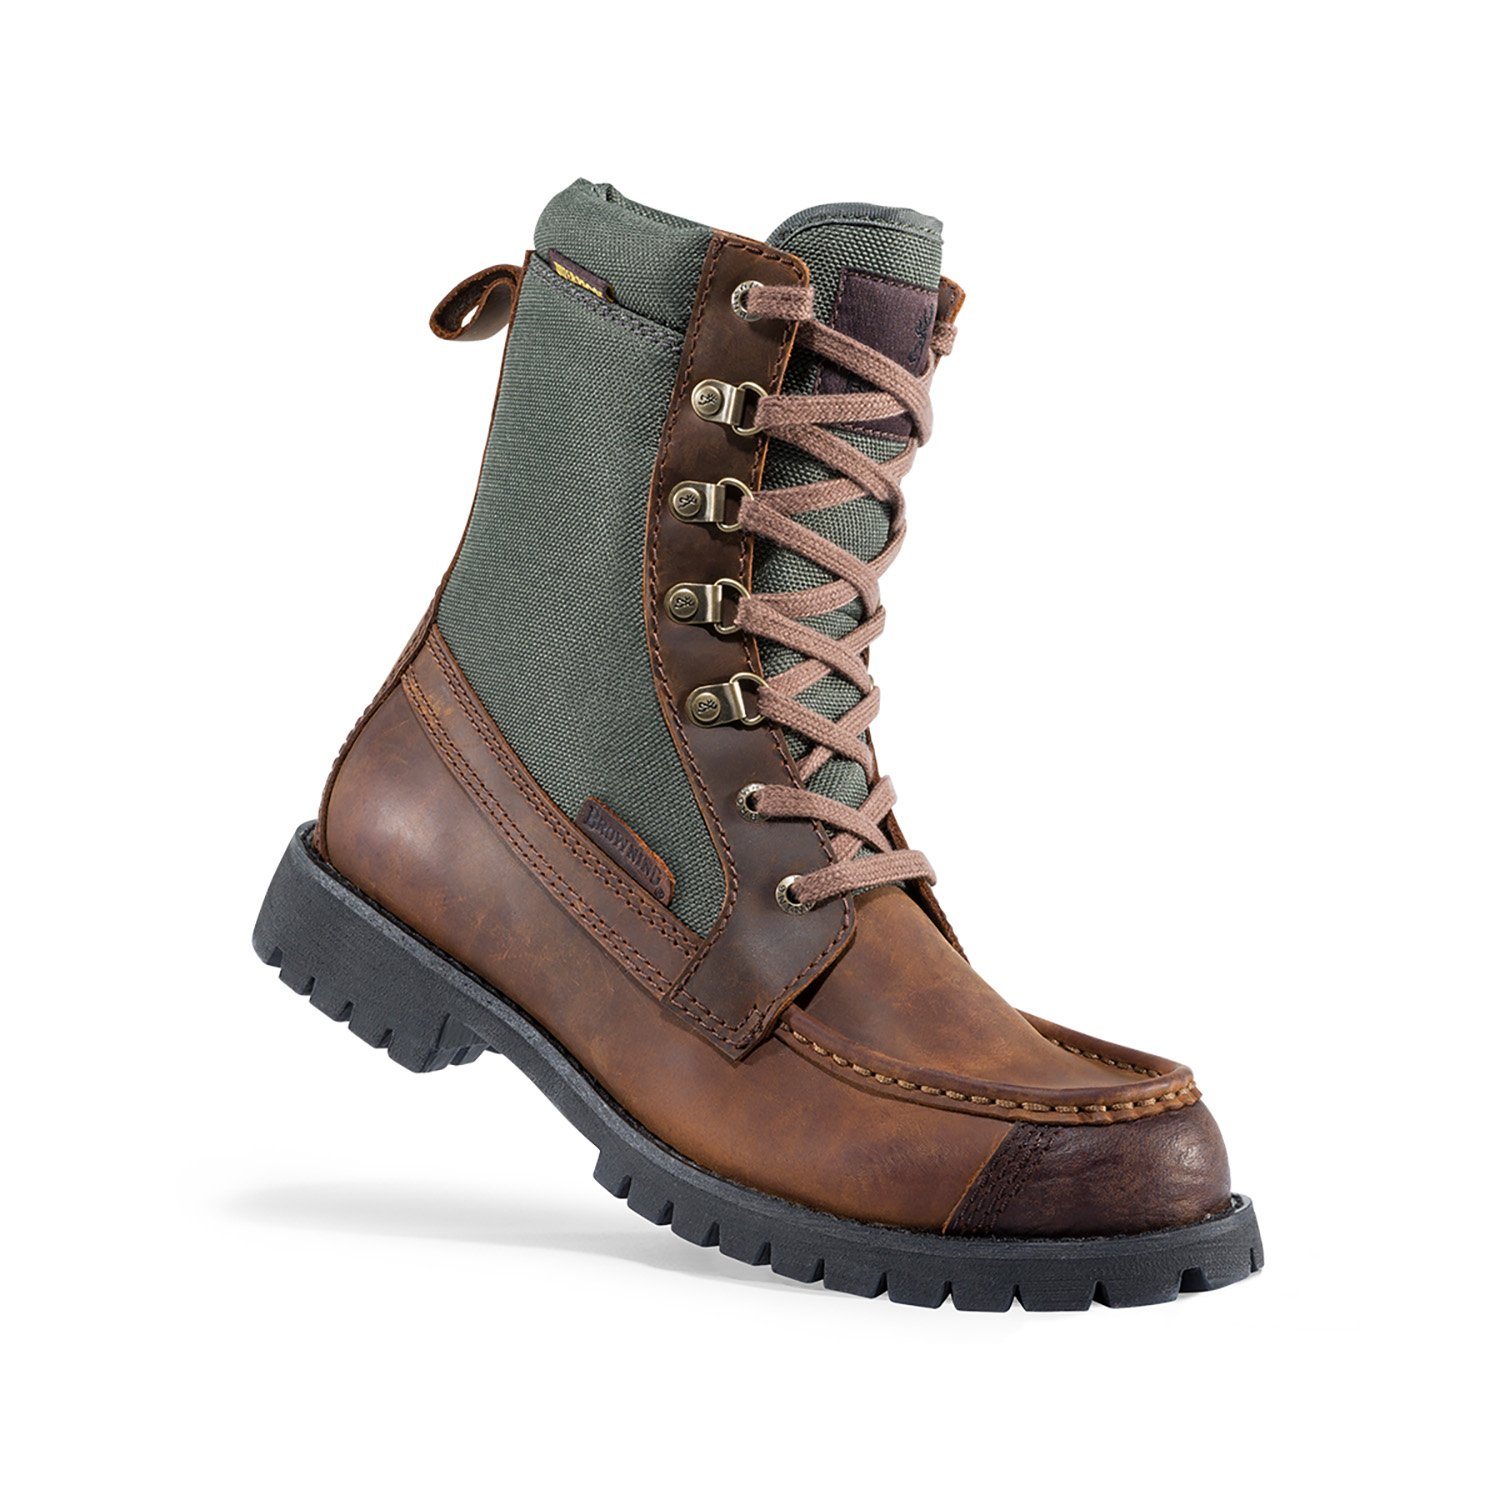 Browning Mens Feather Weight 8in Upland Game Boots, Potting Soil/Forest Night, 8M, F000007020228